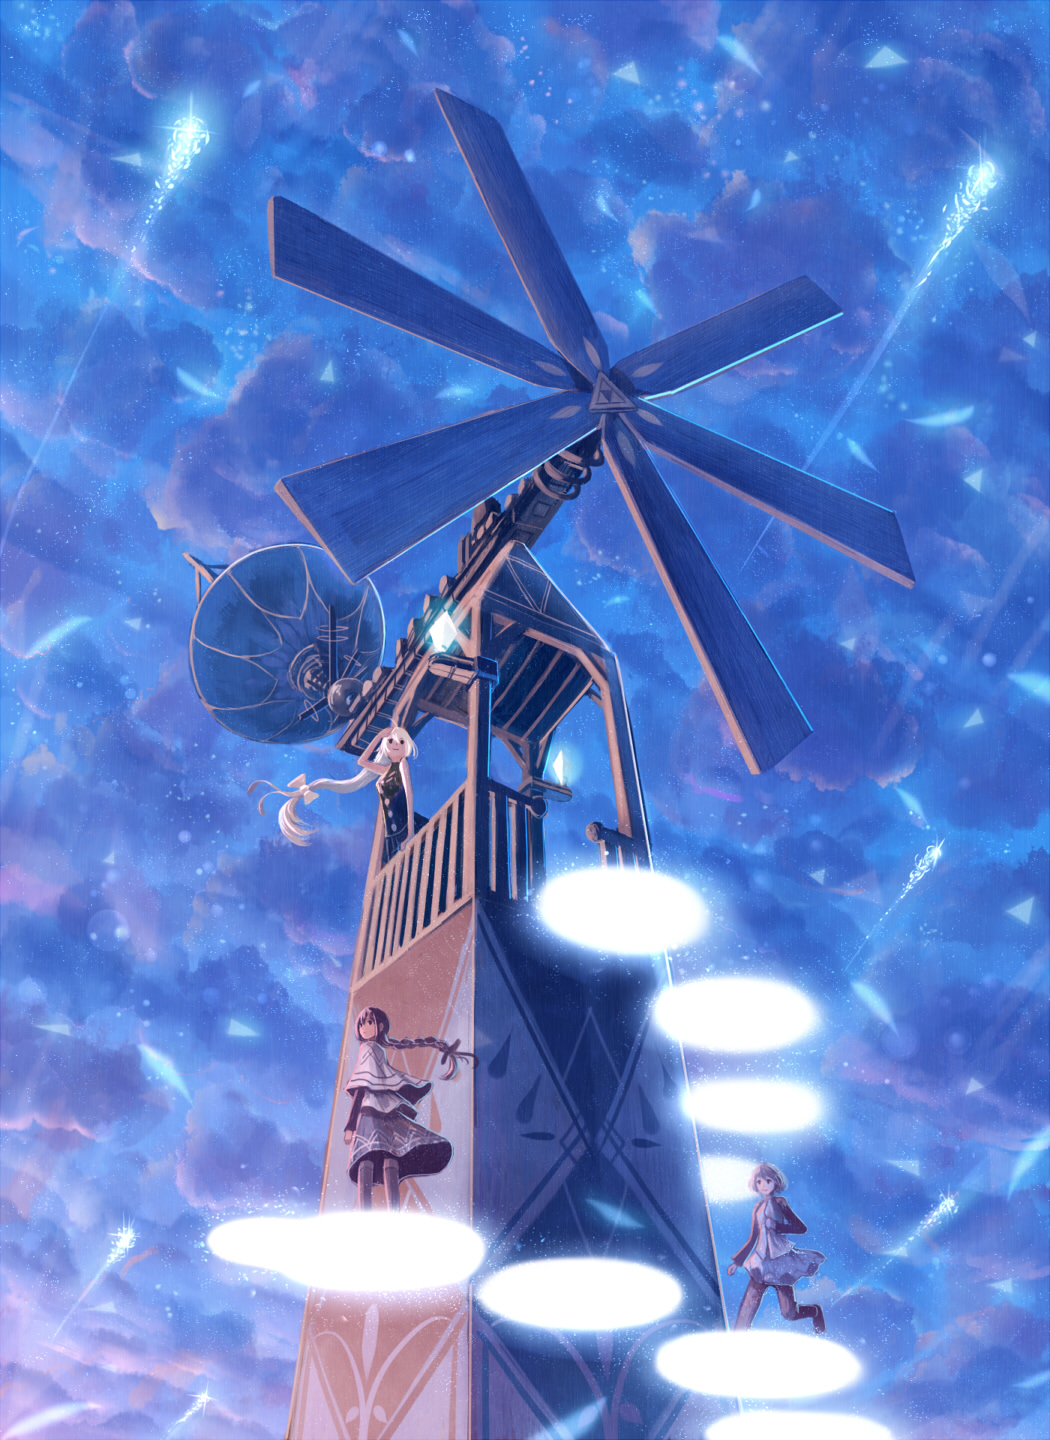 1girl 3girls ahoge bangs black_eyes blue_sky braid cloud cloudy_sky commentary_request fantasy hair_ribbon highres long_hair looking_afar magic multiple_girls original ribbon running sakimori_(hououbds) satellite_dish scenery skirt sky solo stairs thighhighs tower tress_ribbon white_hair wind_turbine windmill